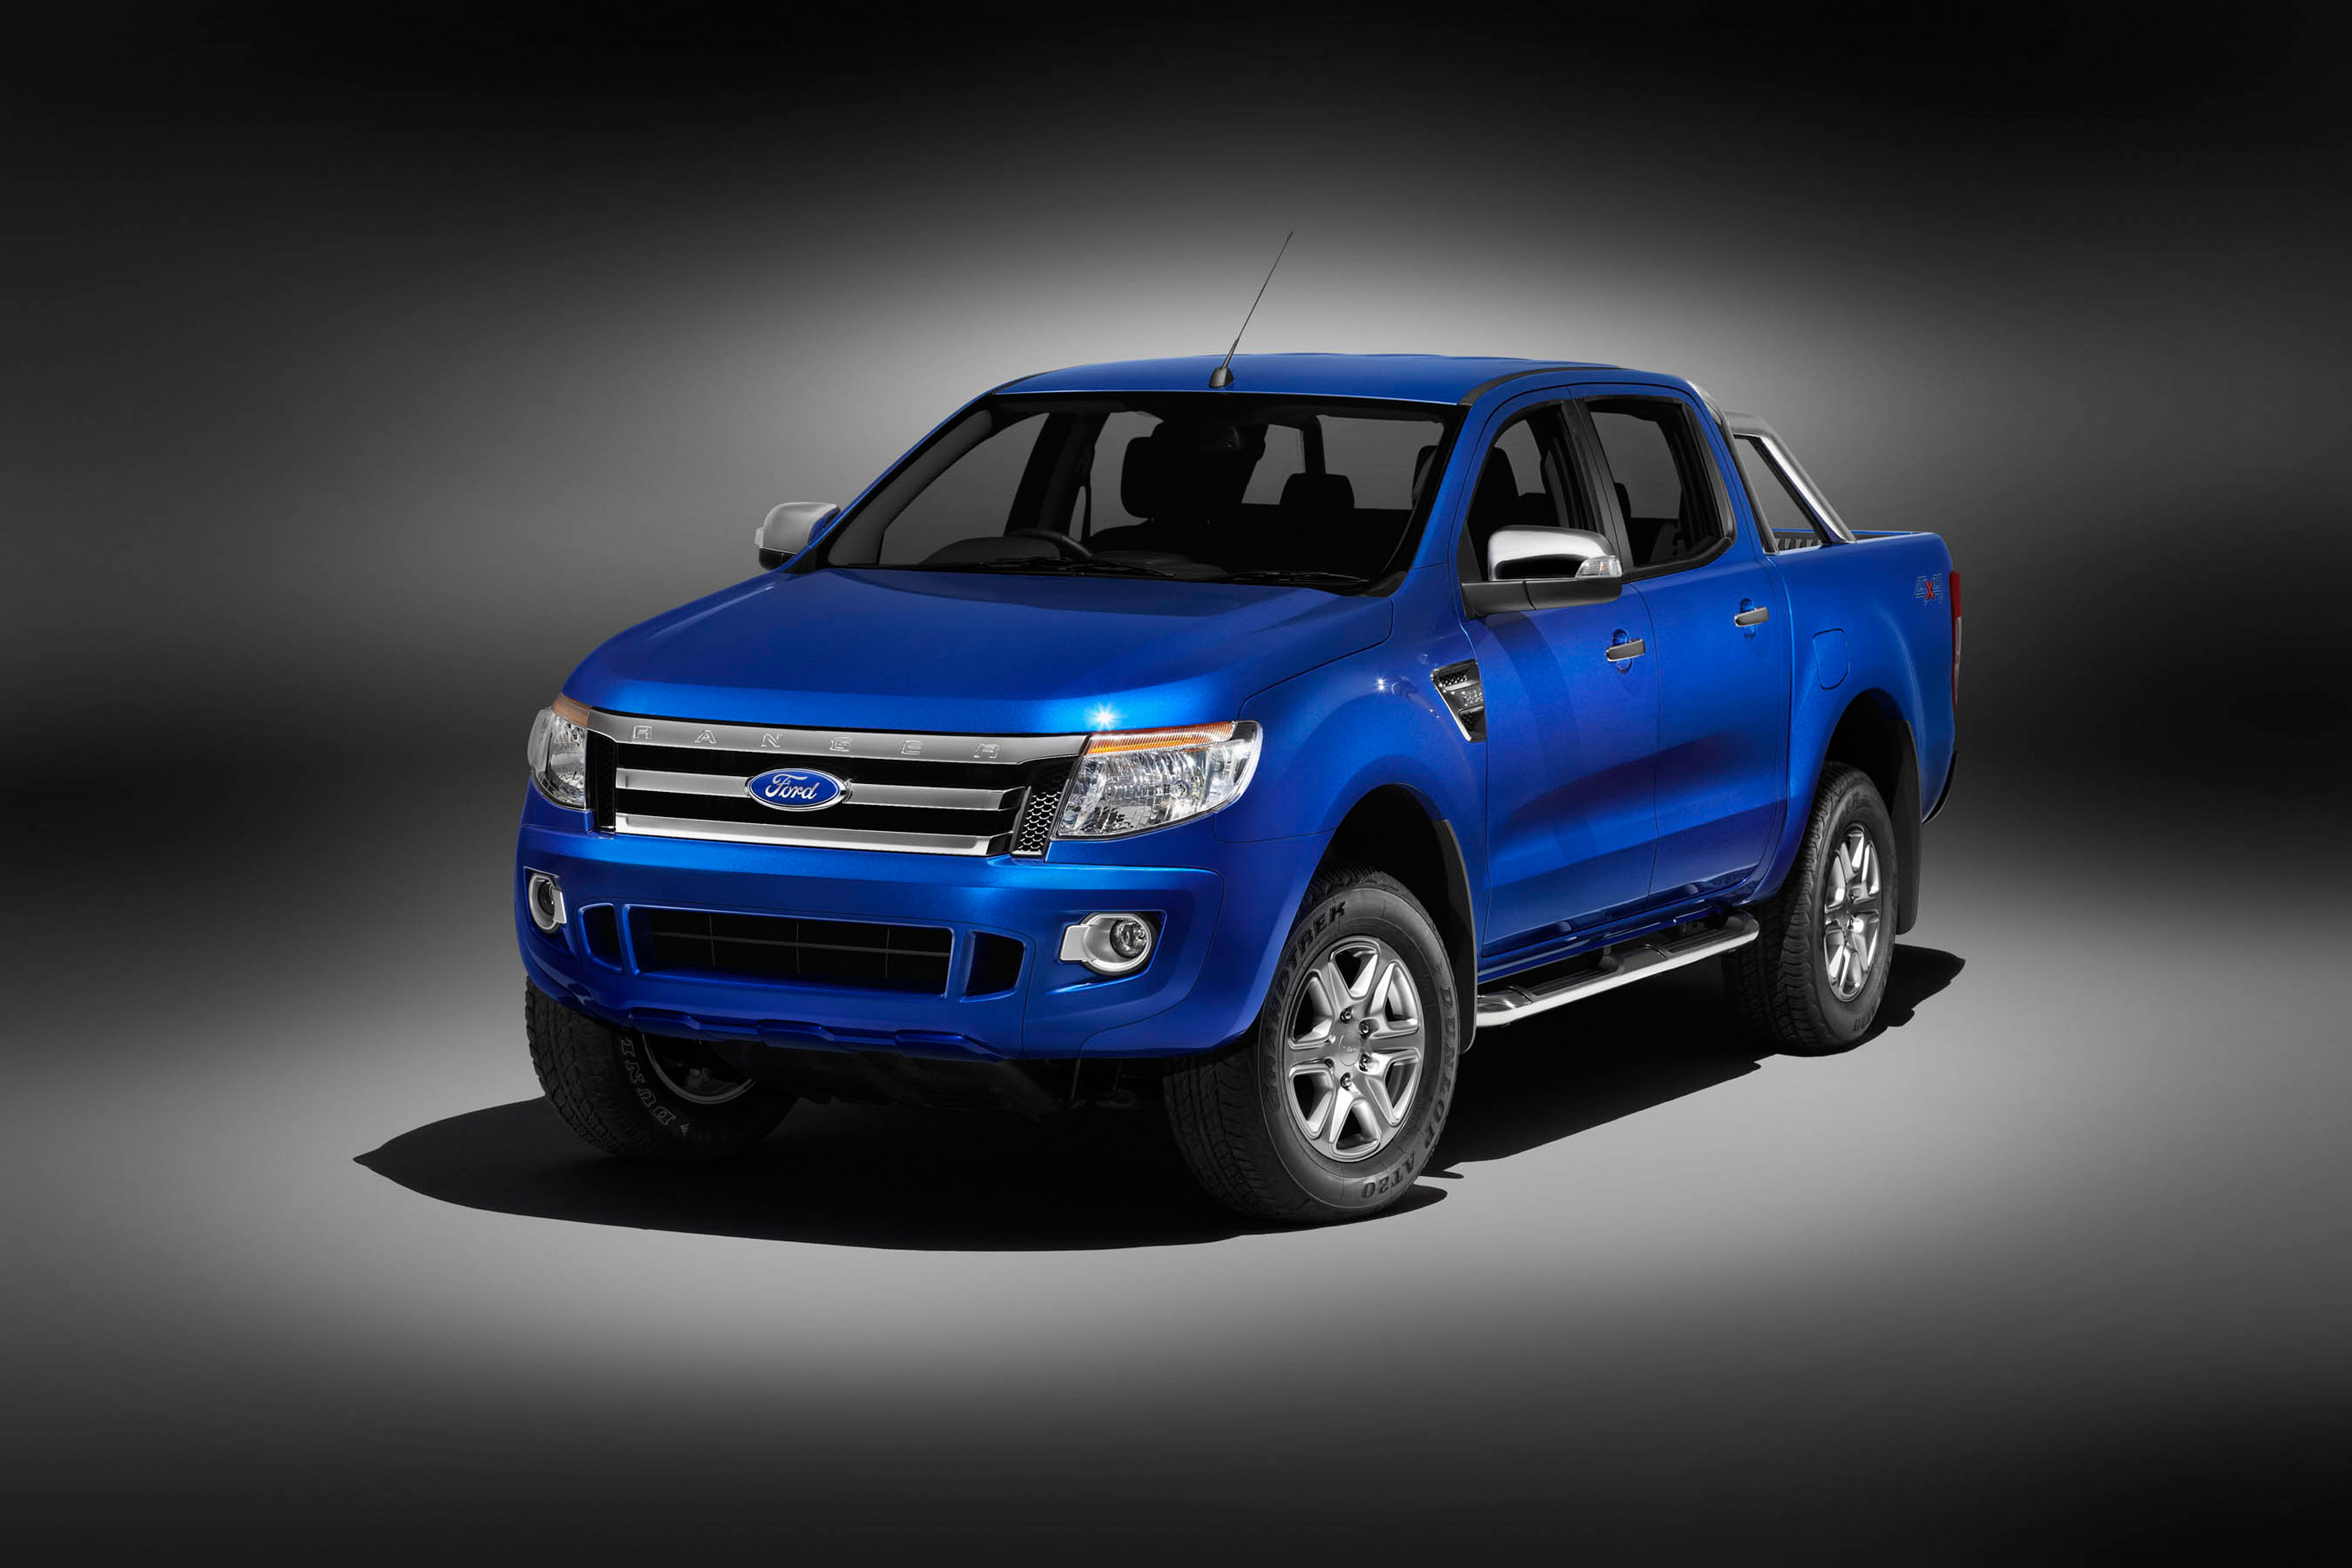 2011 ford ranger full details. Black Bedroom Furniture Sets. Home Design Ideas